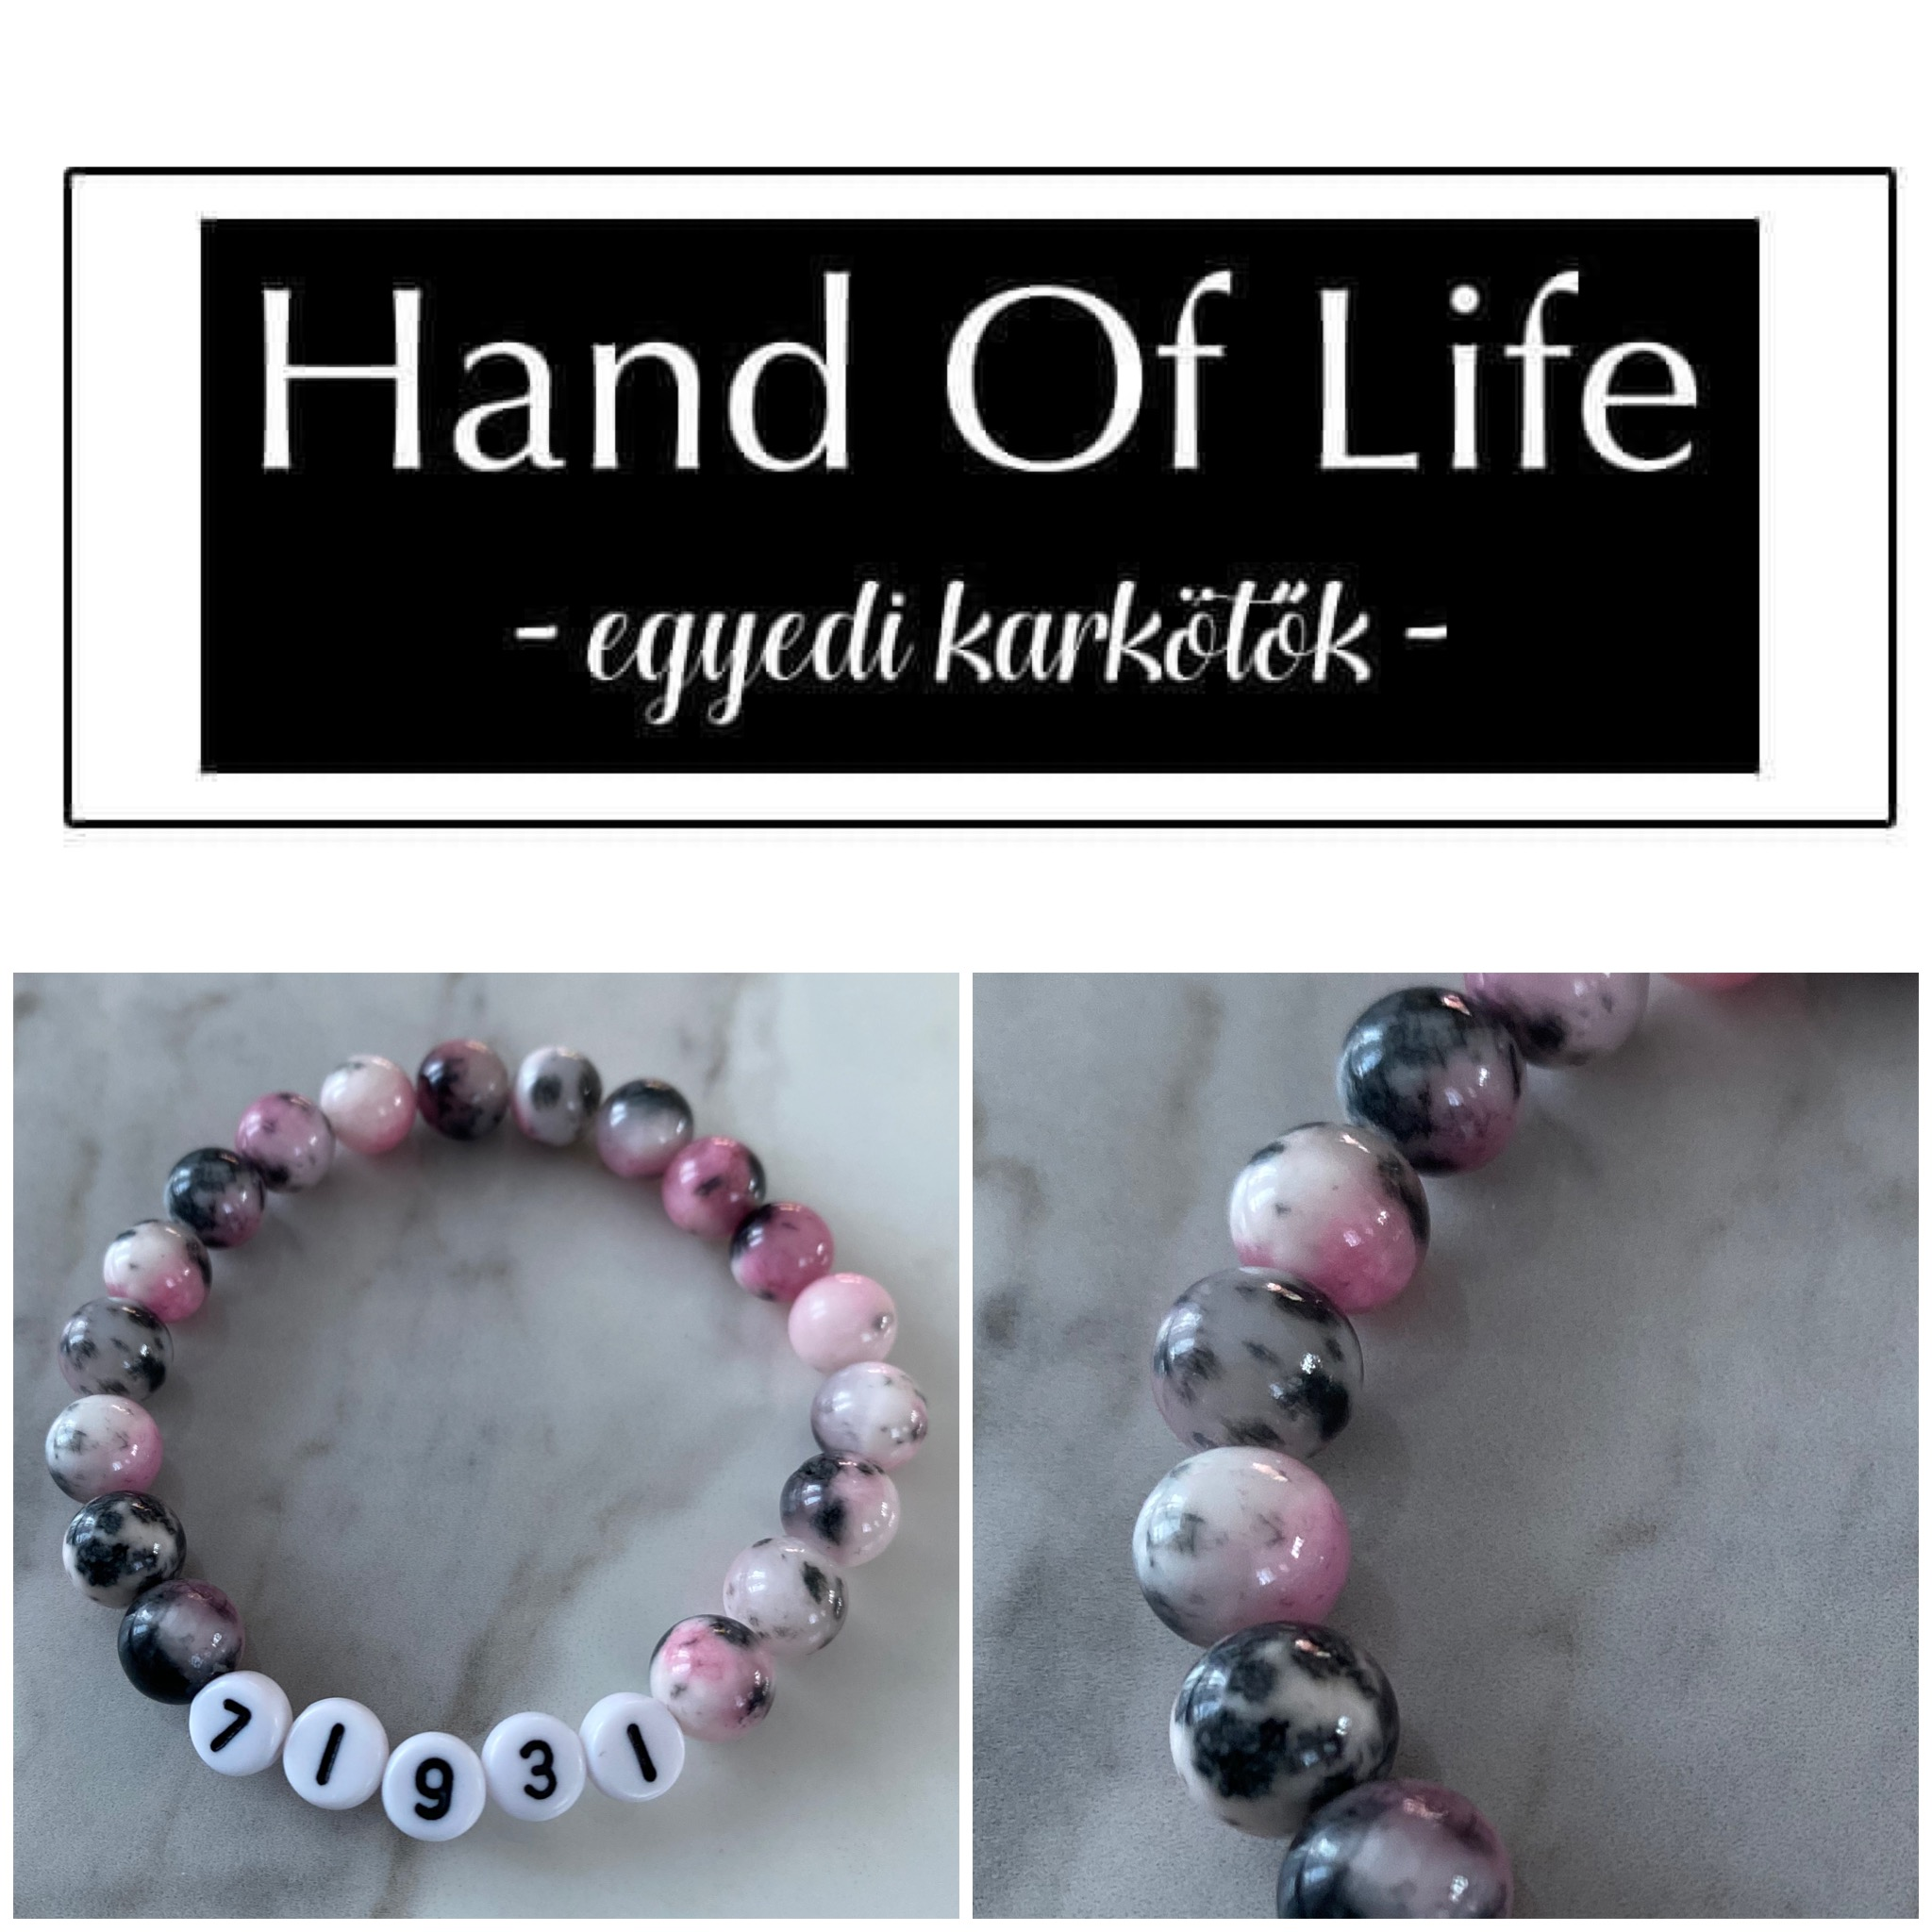 202151-250 Hand Of Life